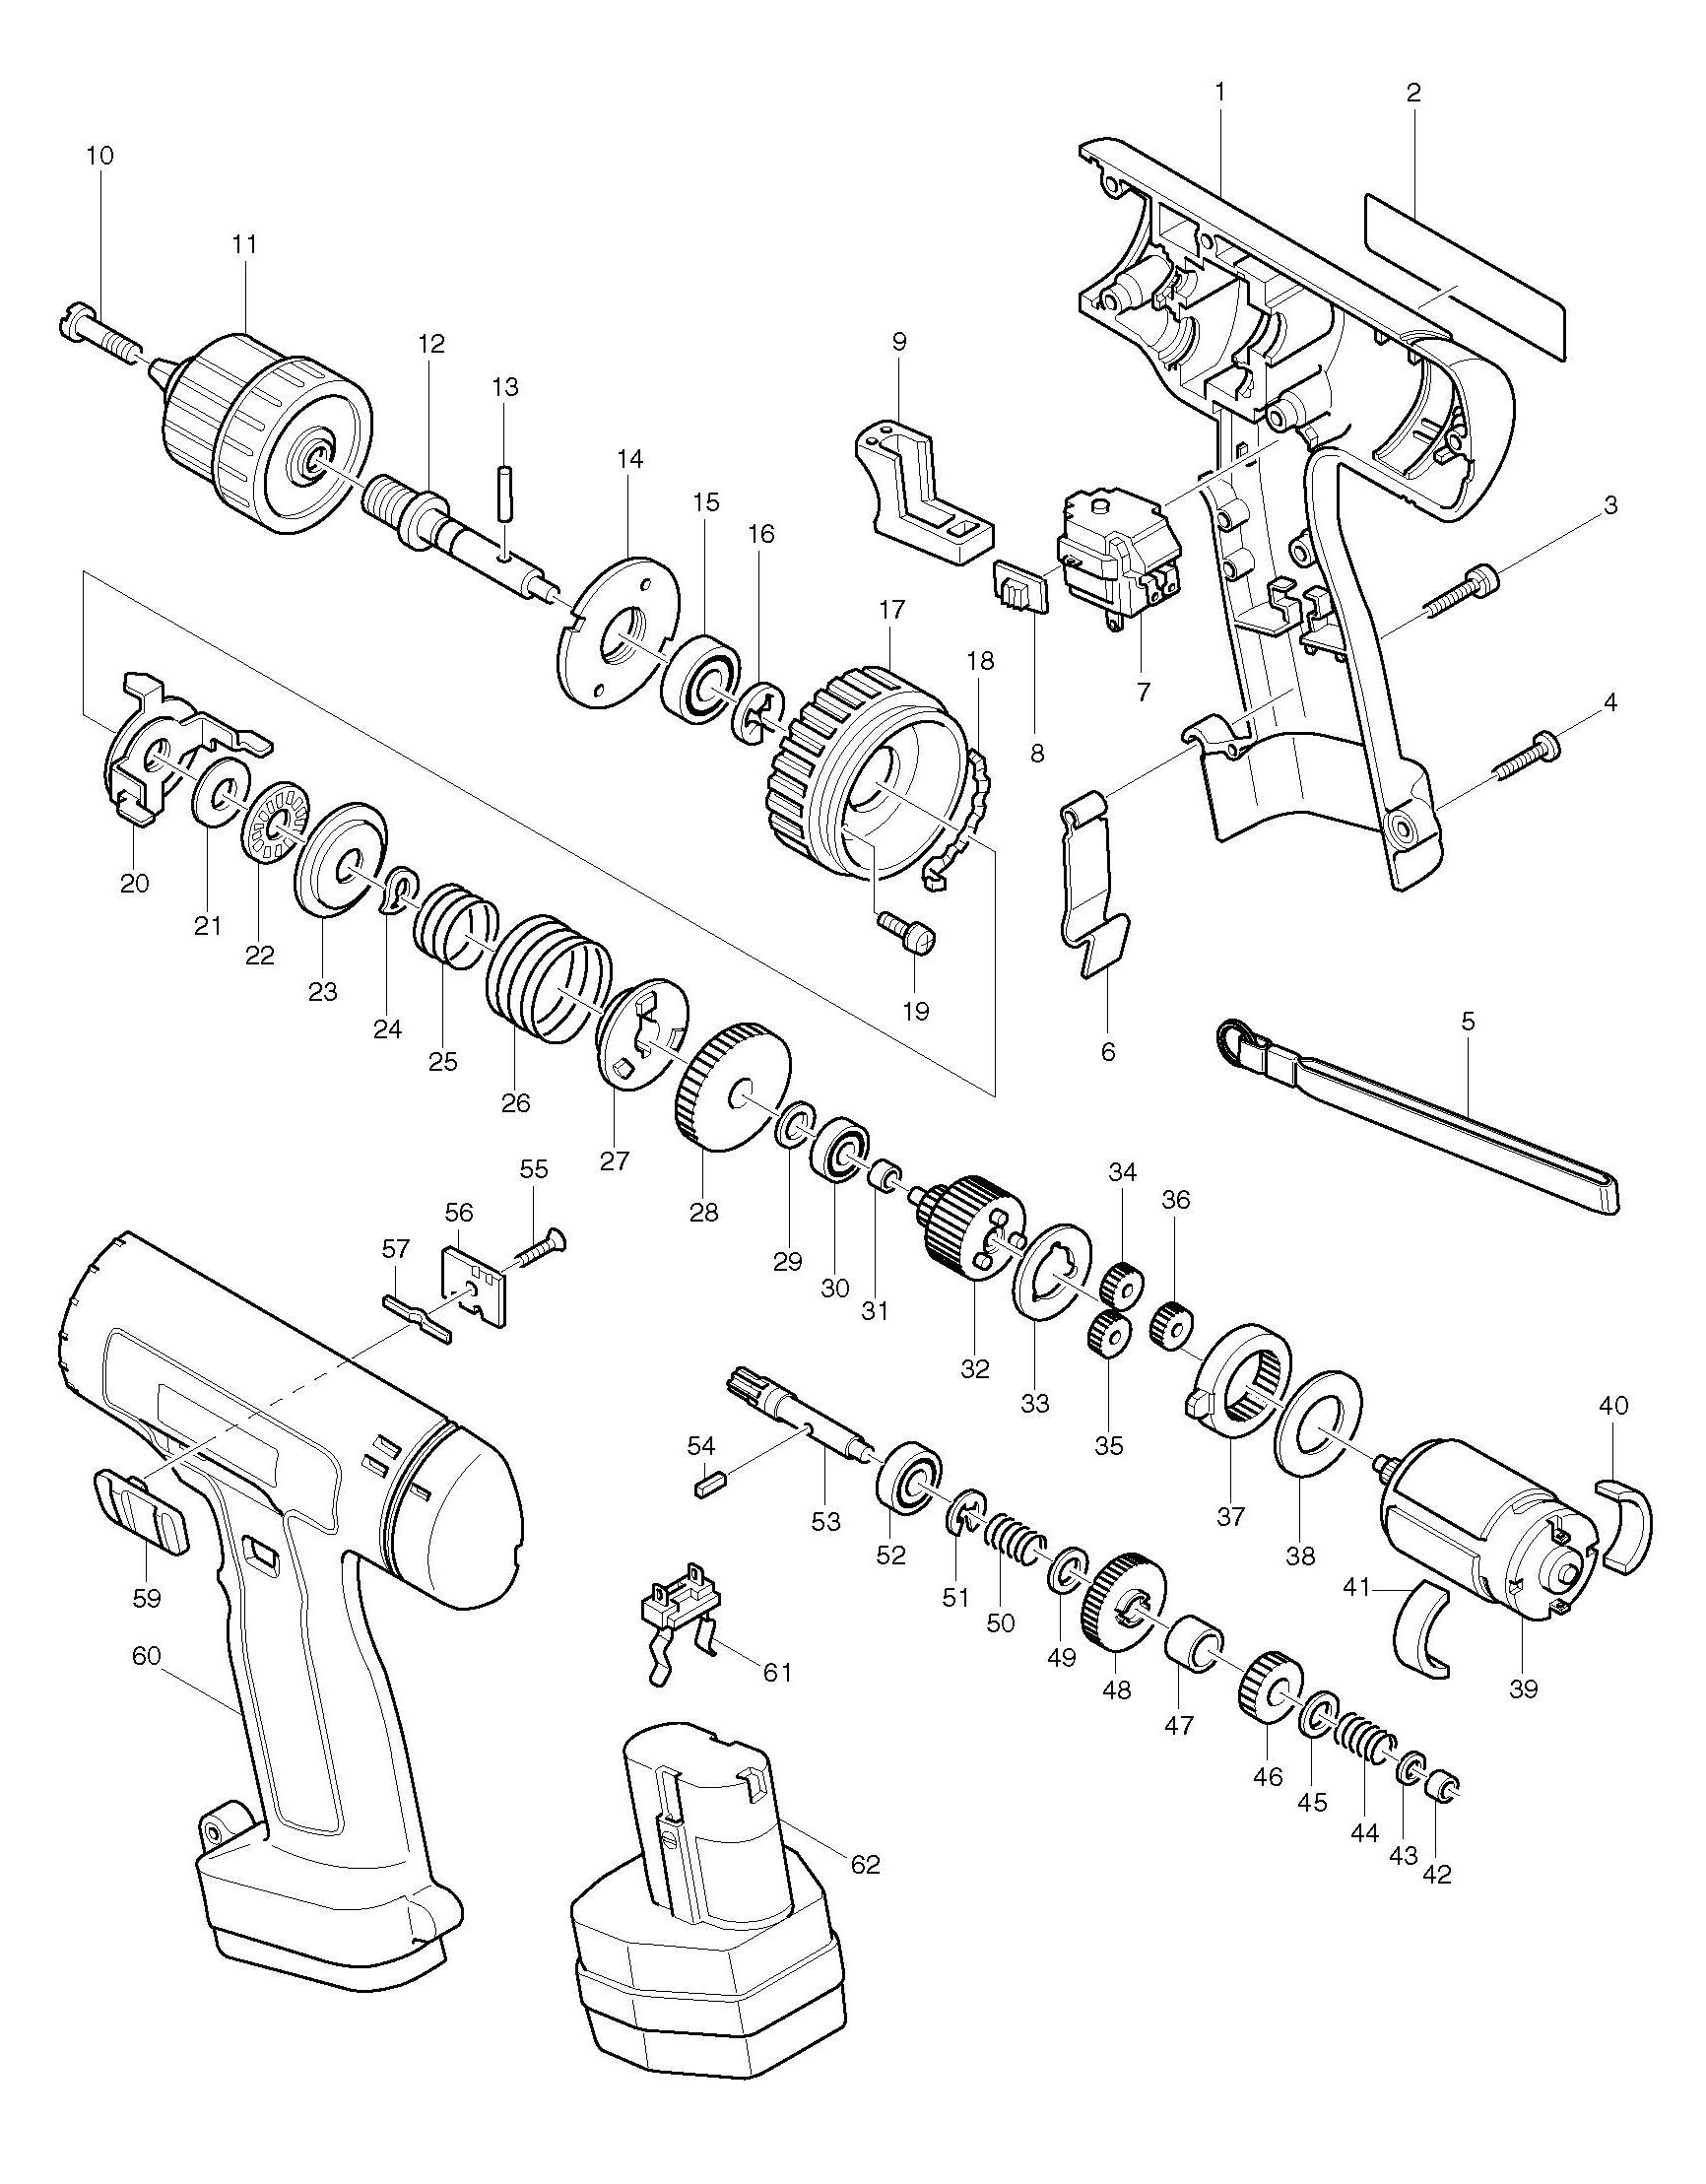 Spares for Makita 6201d Drill/driver SPARE_6201D from